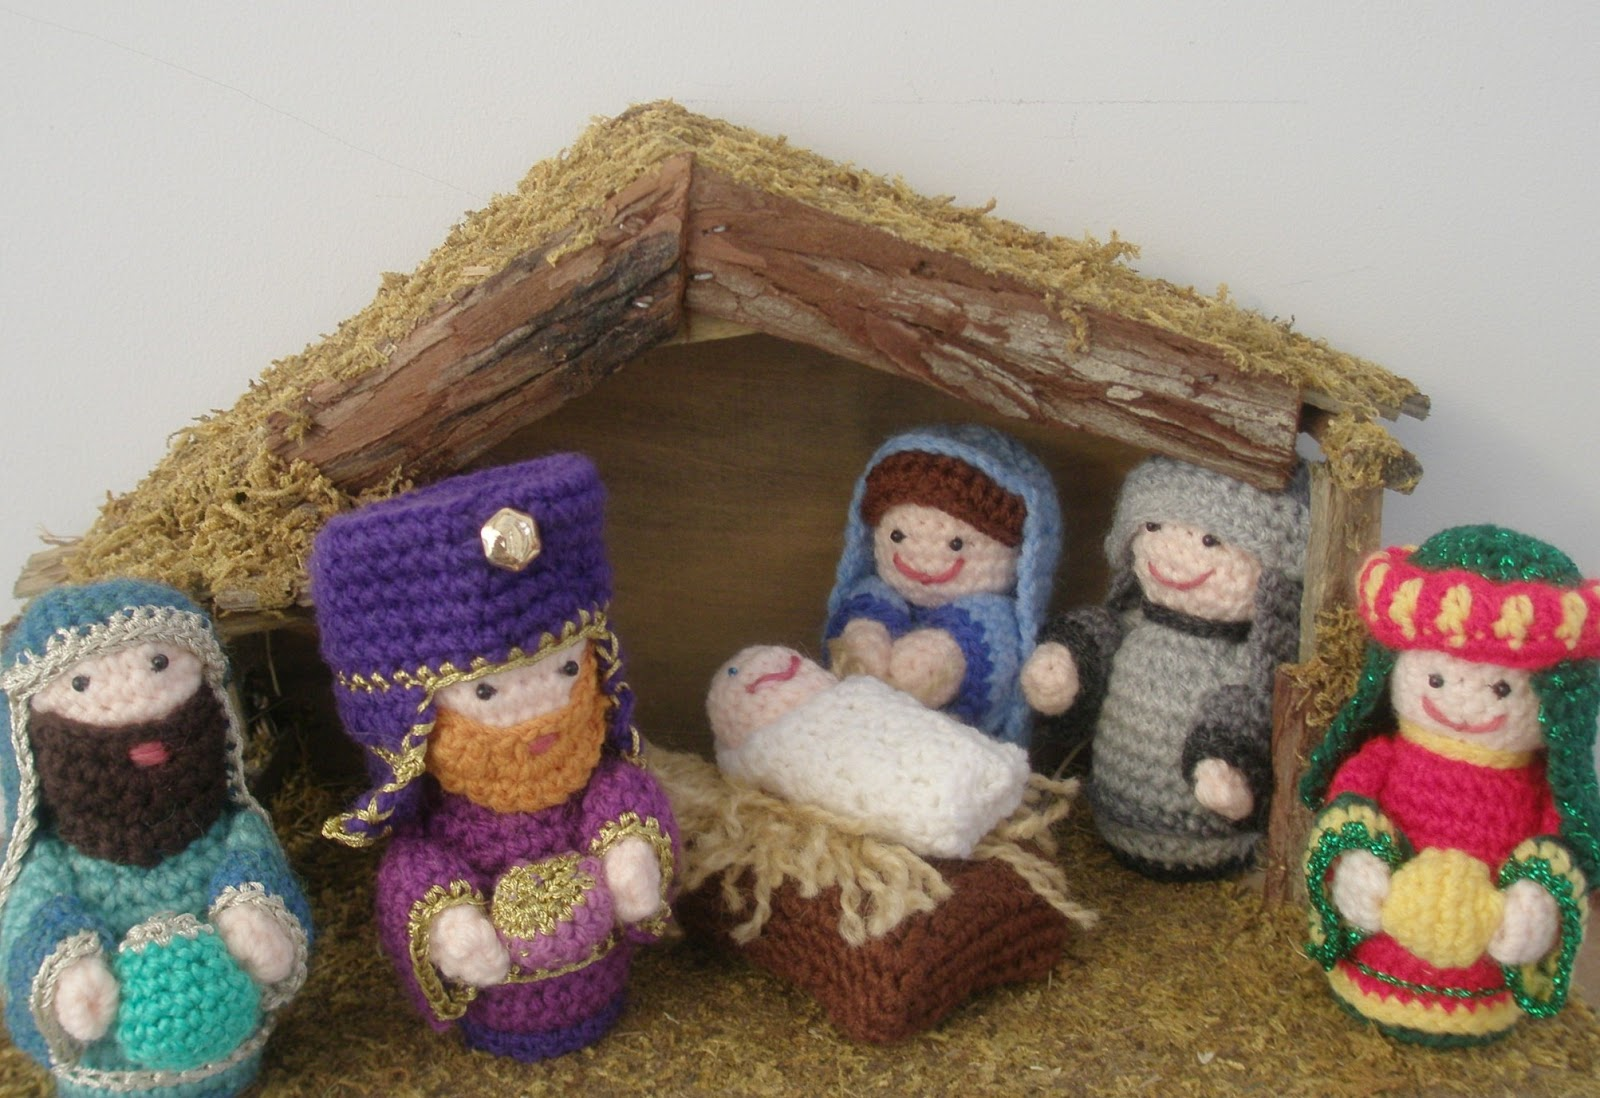 Crochet Patterns Nativity Scene : A Ray of light and a crochet nativity Finale! Lazy Daisy ...